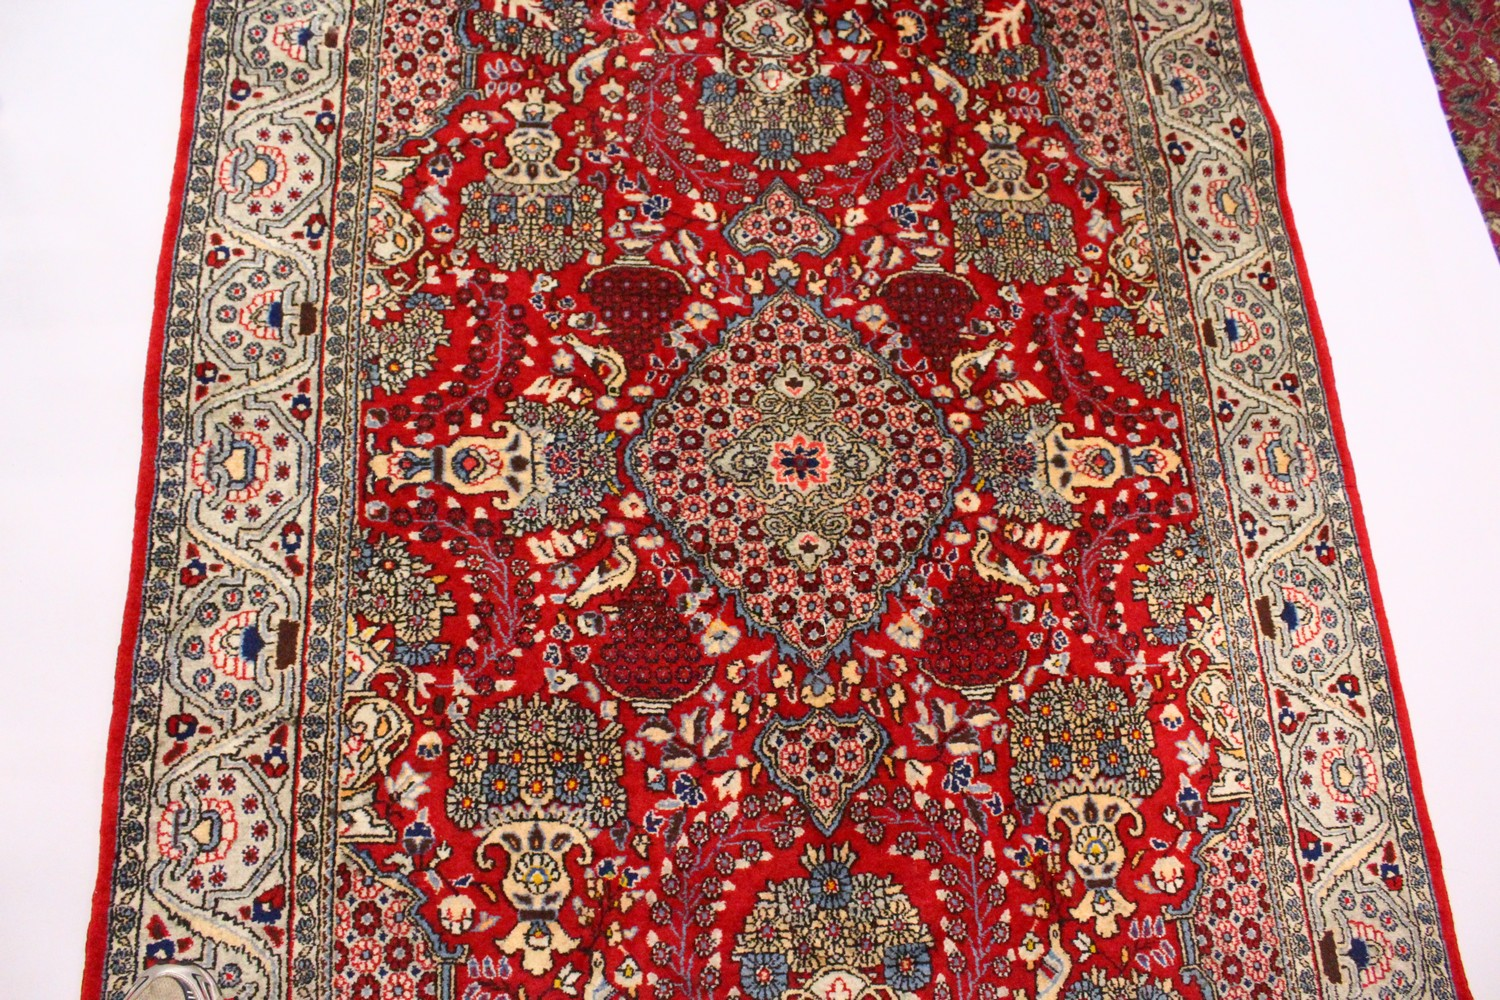 Lot 1032 - A PERSIAN ISFAHAN CARPET, red ground with central medallion, urns of flowers in a conforming